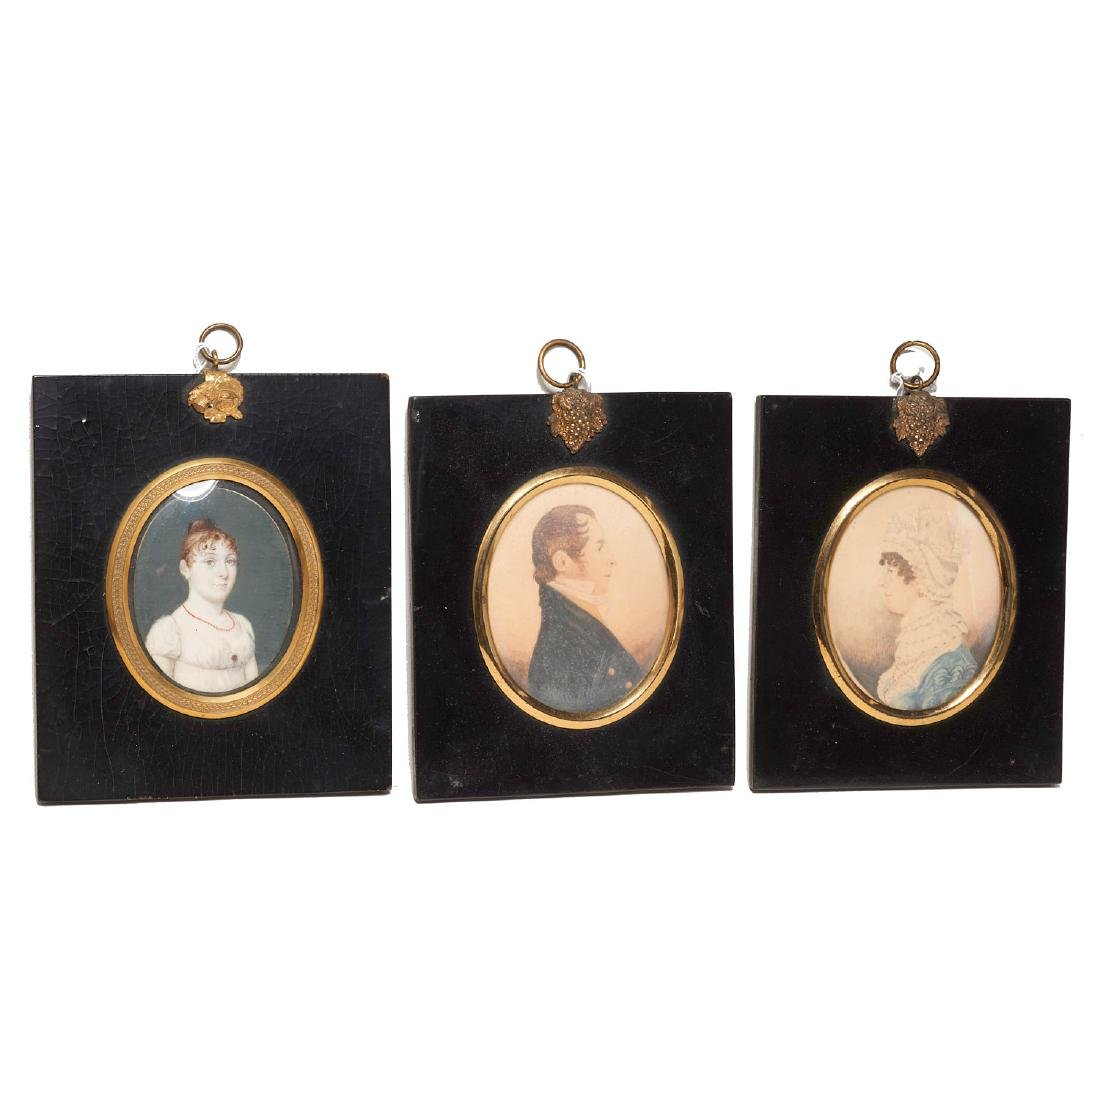 Collection European miniature paintings and icon - 3